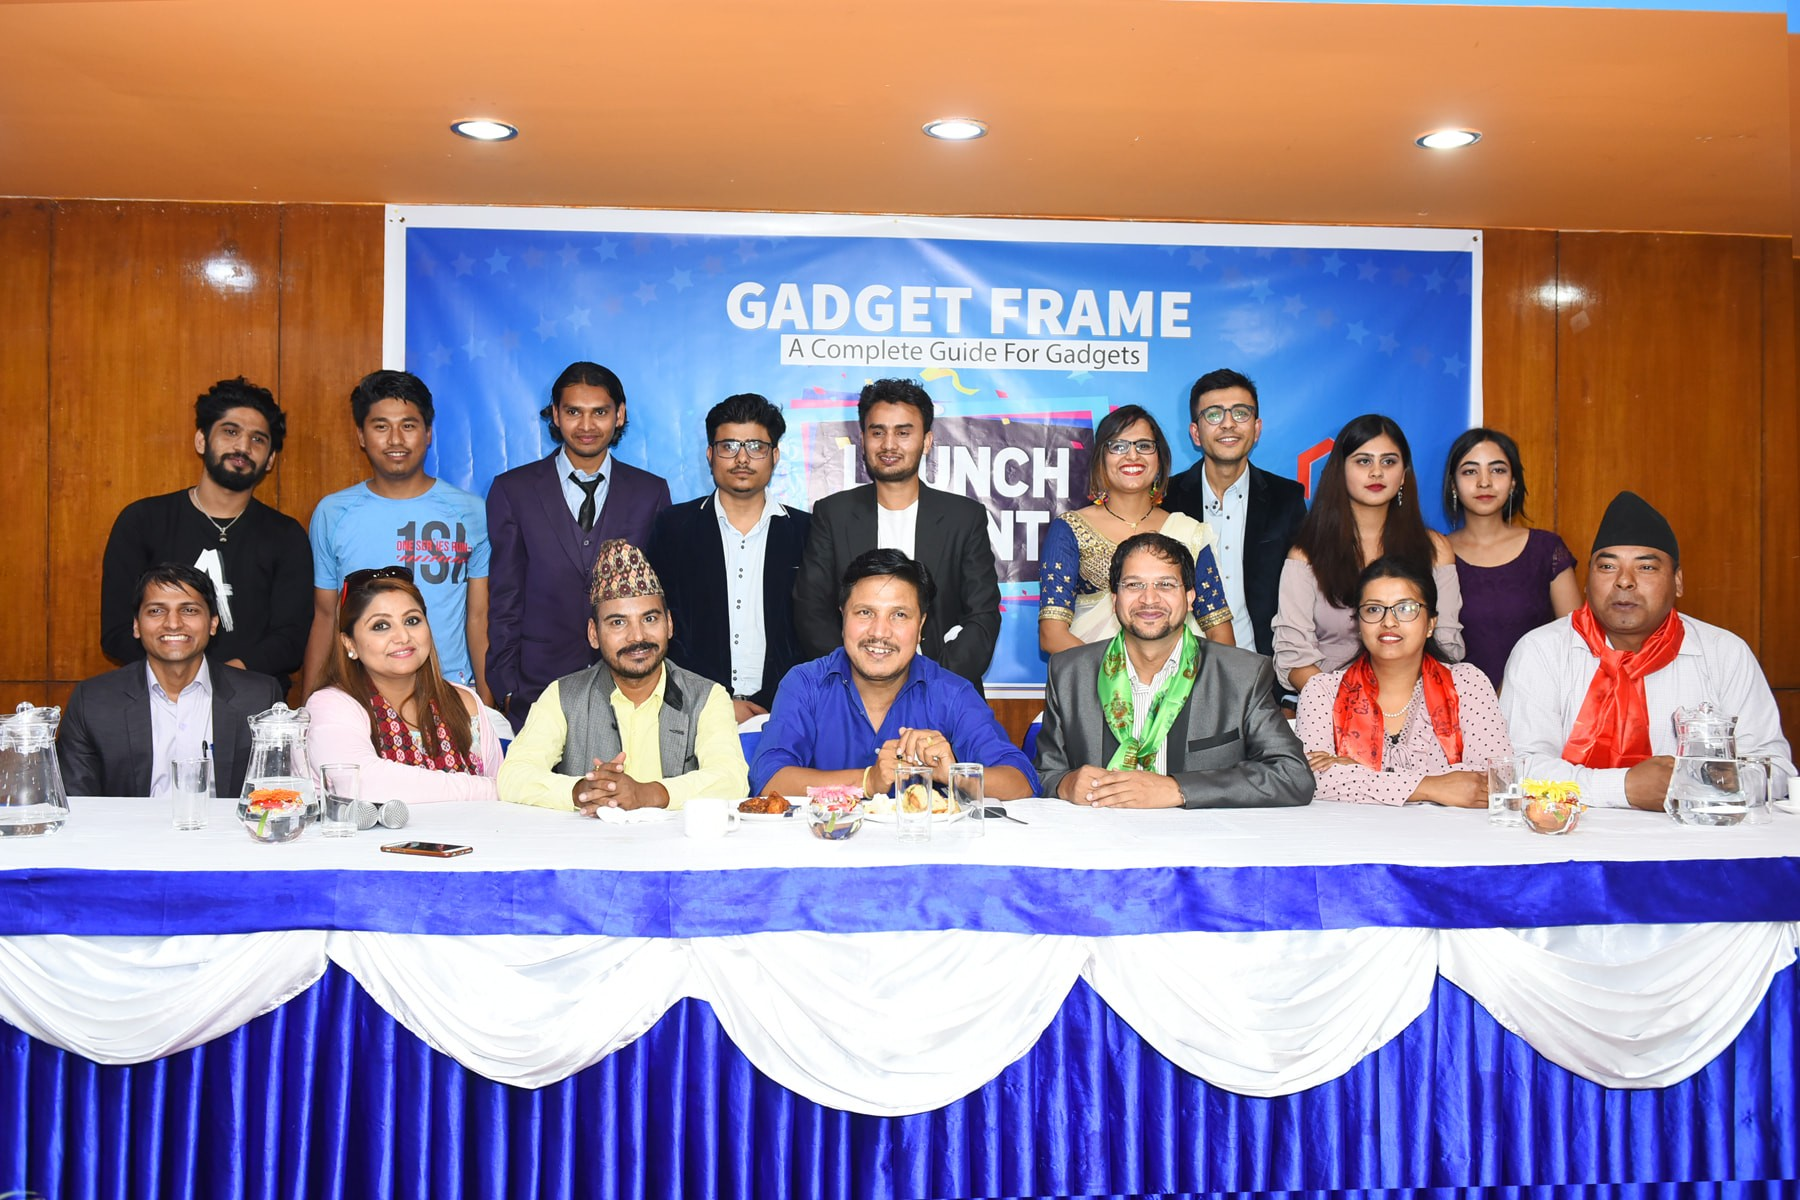 Gadgetfarme launch event